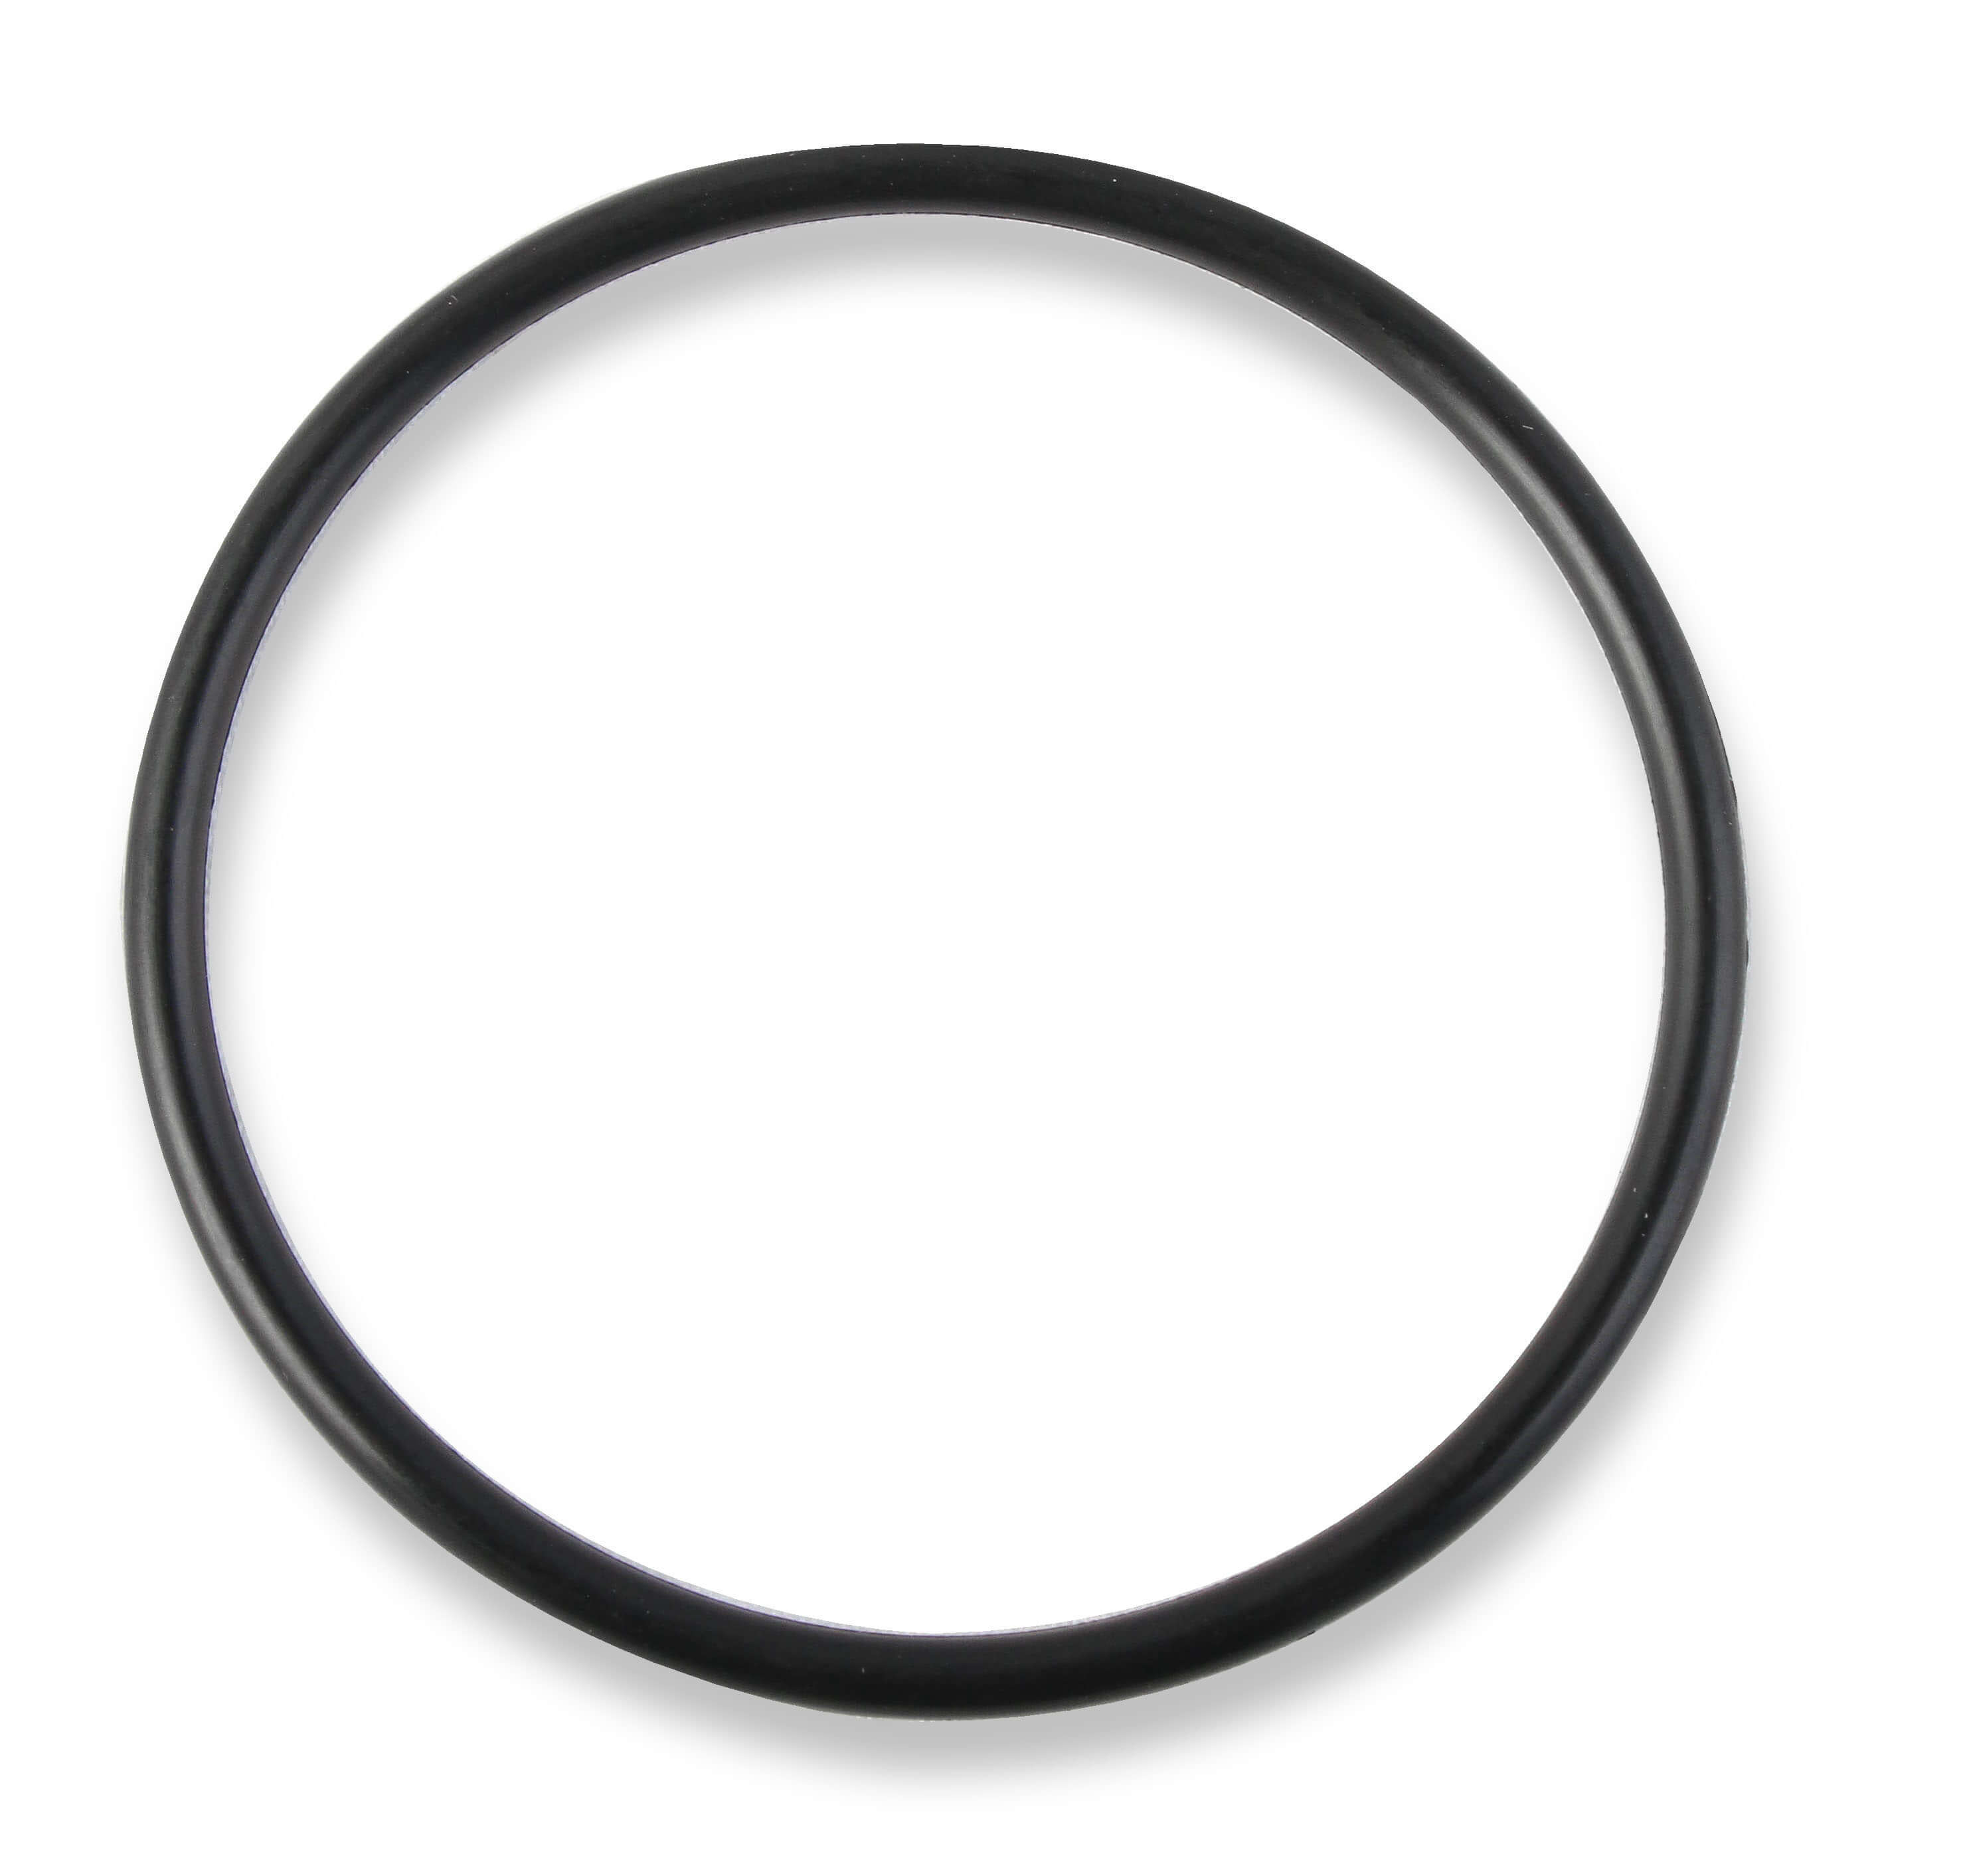 Earls 176178ERL O-Ring, 2.750 in OD, Rubber, Earl's Oil Filter Adapter, Each